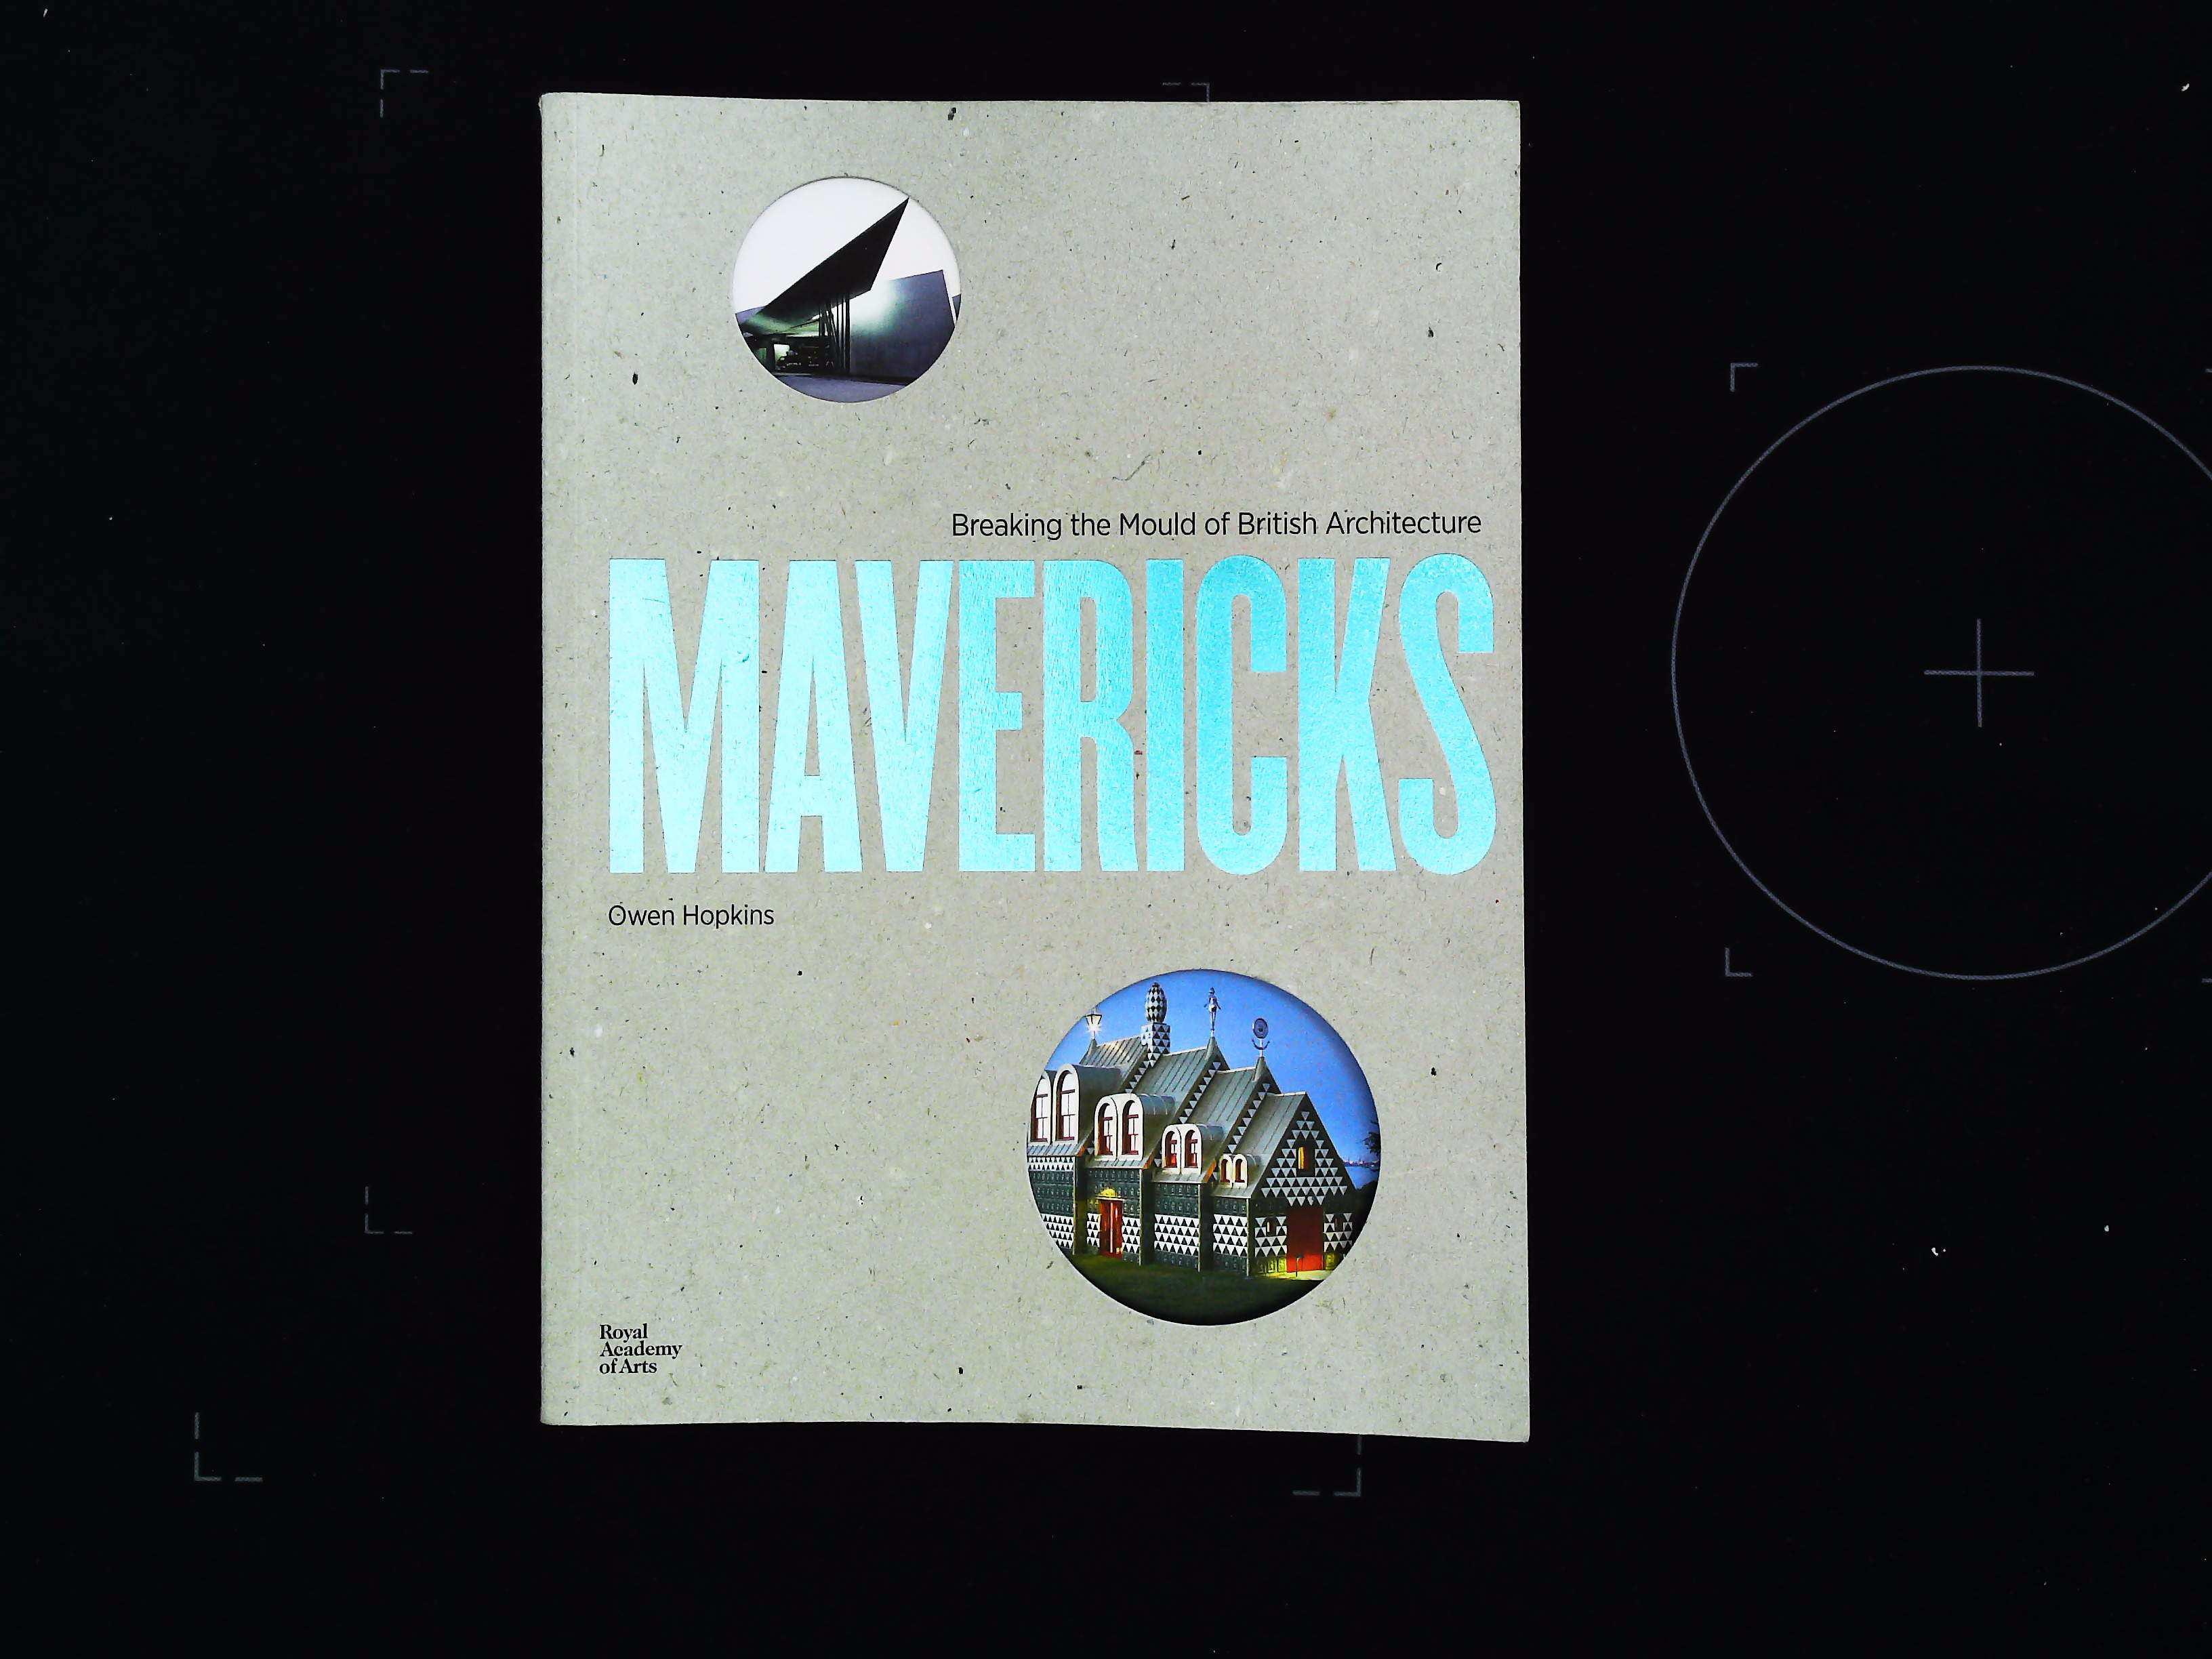 Mavericks Breaking The Mould Of British Architecture paperback book by Owen Hopkins. Published